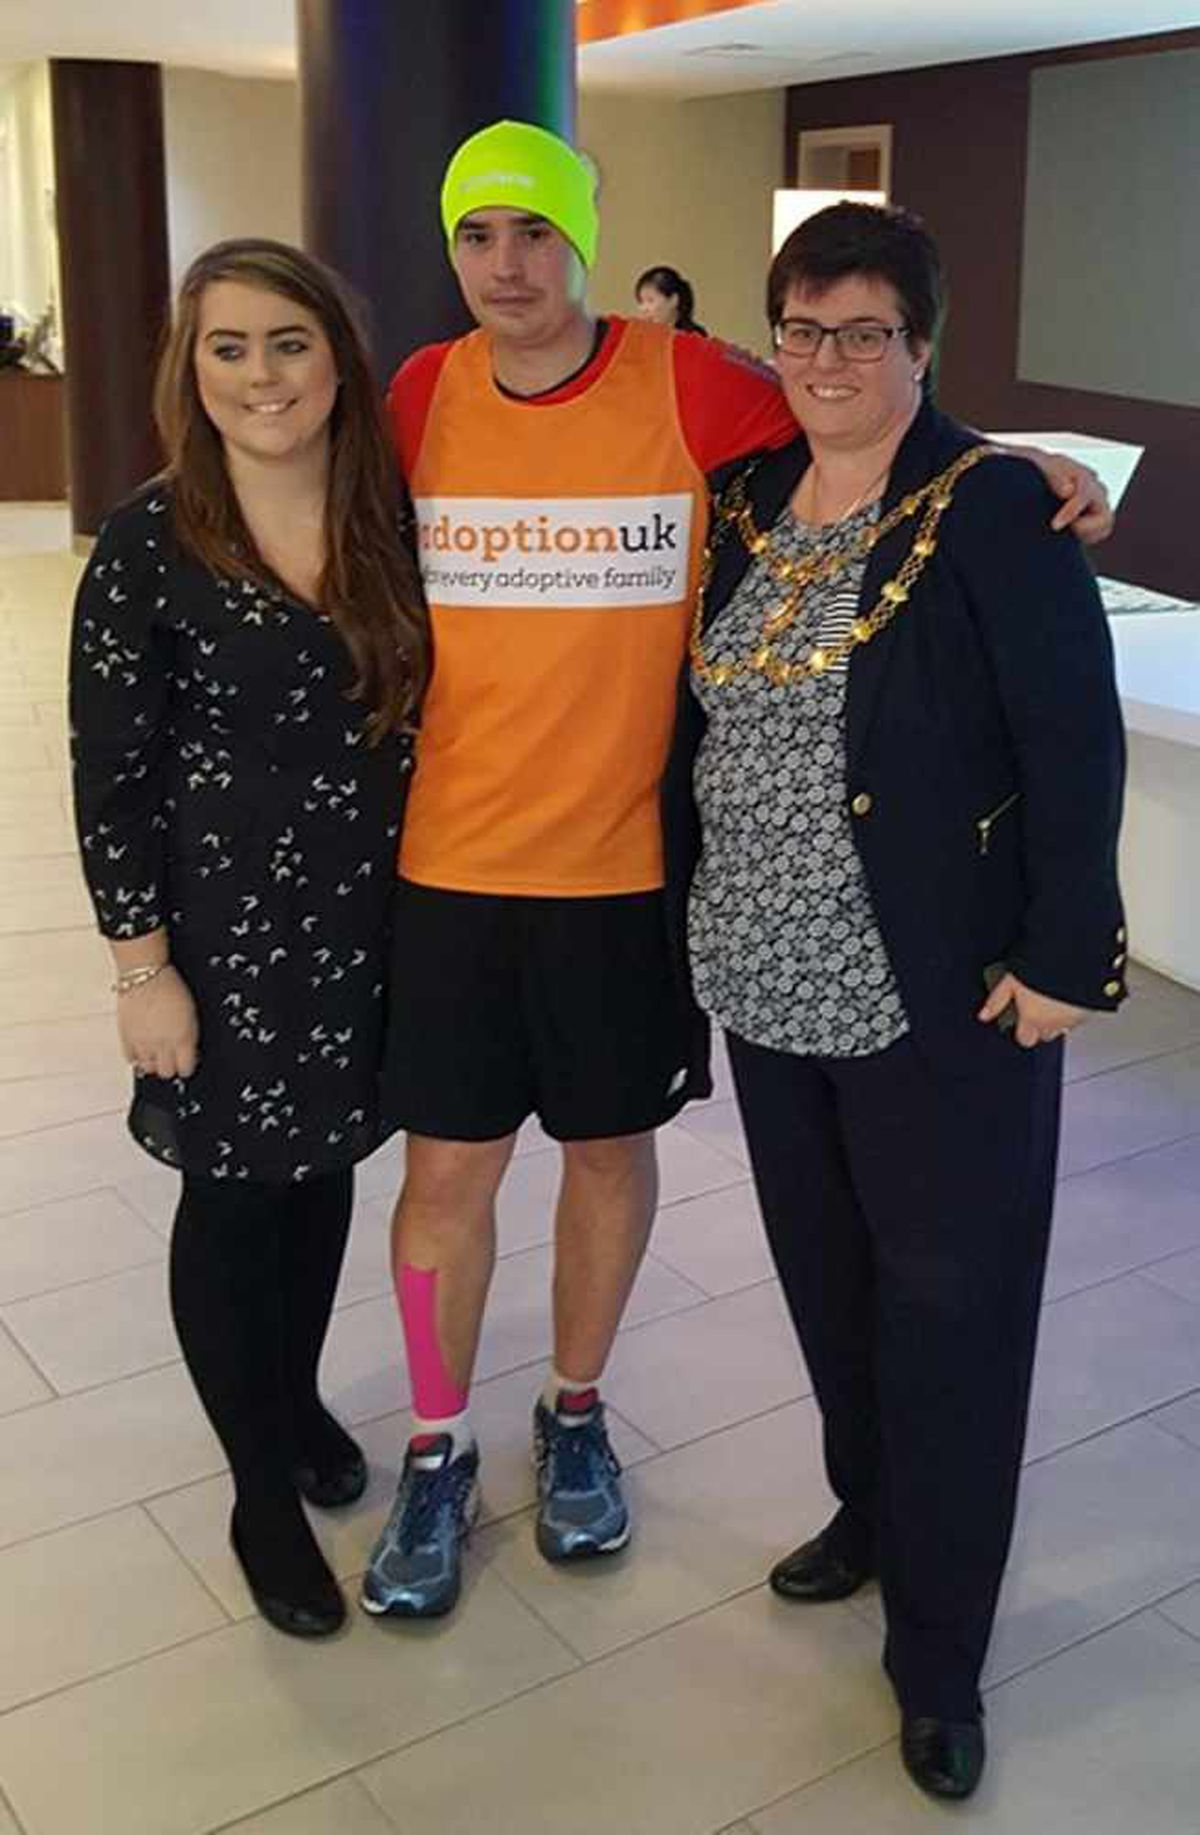 Mark is pictured with Ella Hiscott of the Holiday Inn and Dunstable Town Mayor Councillor Liz Jones after breaking the world record